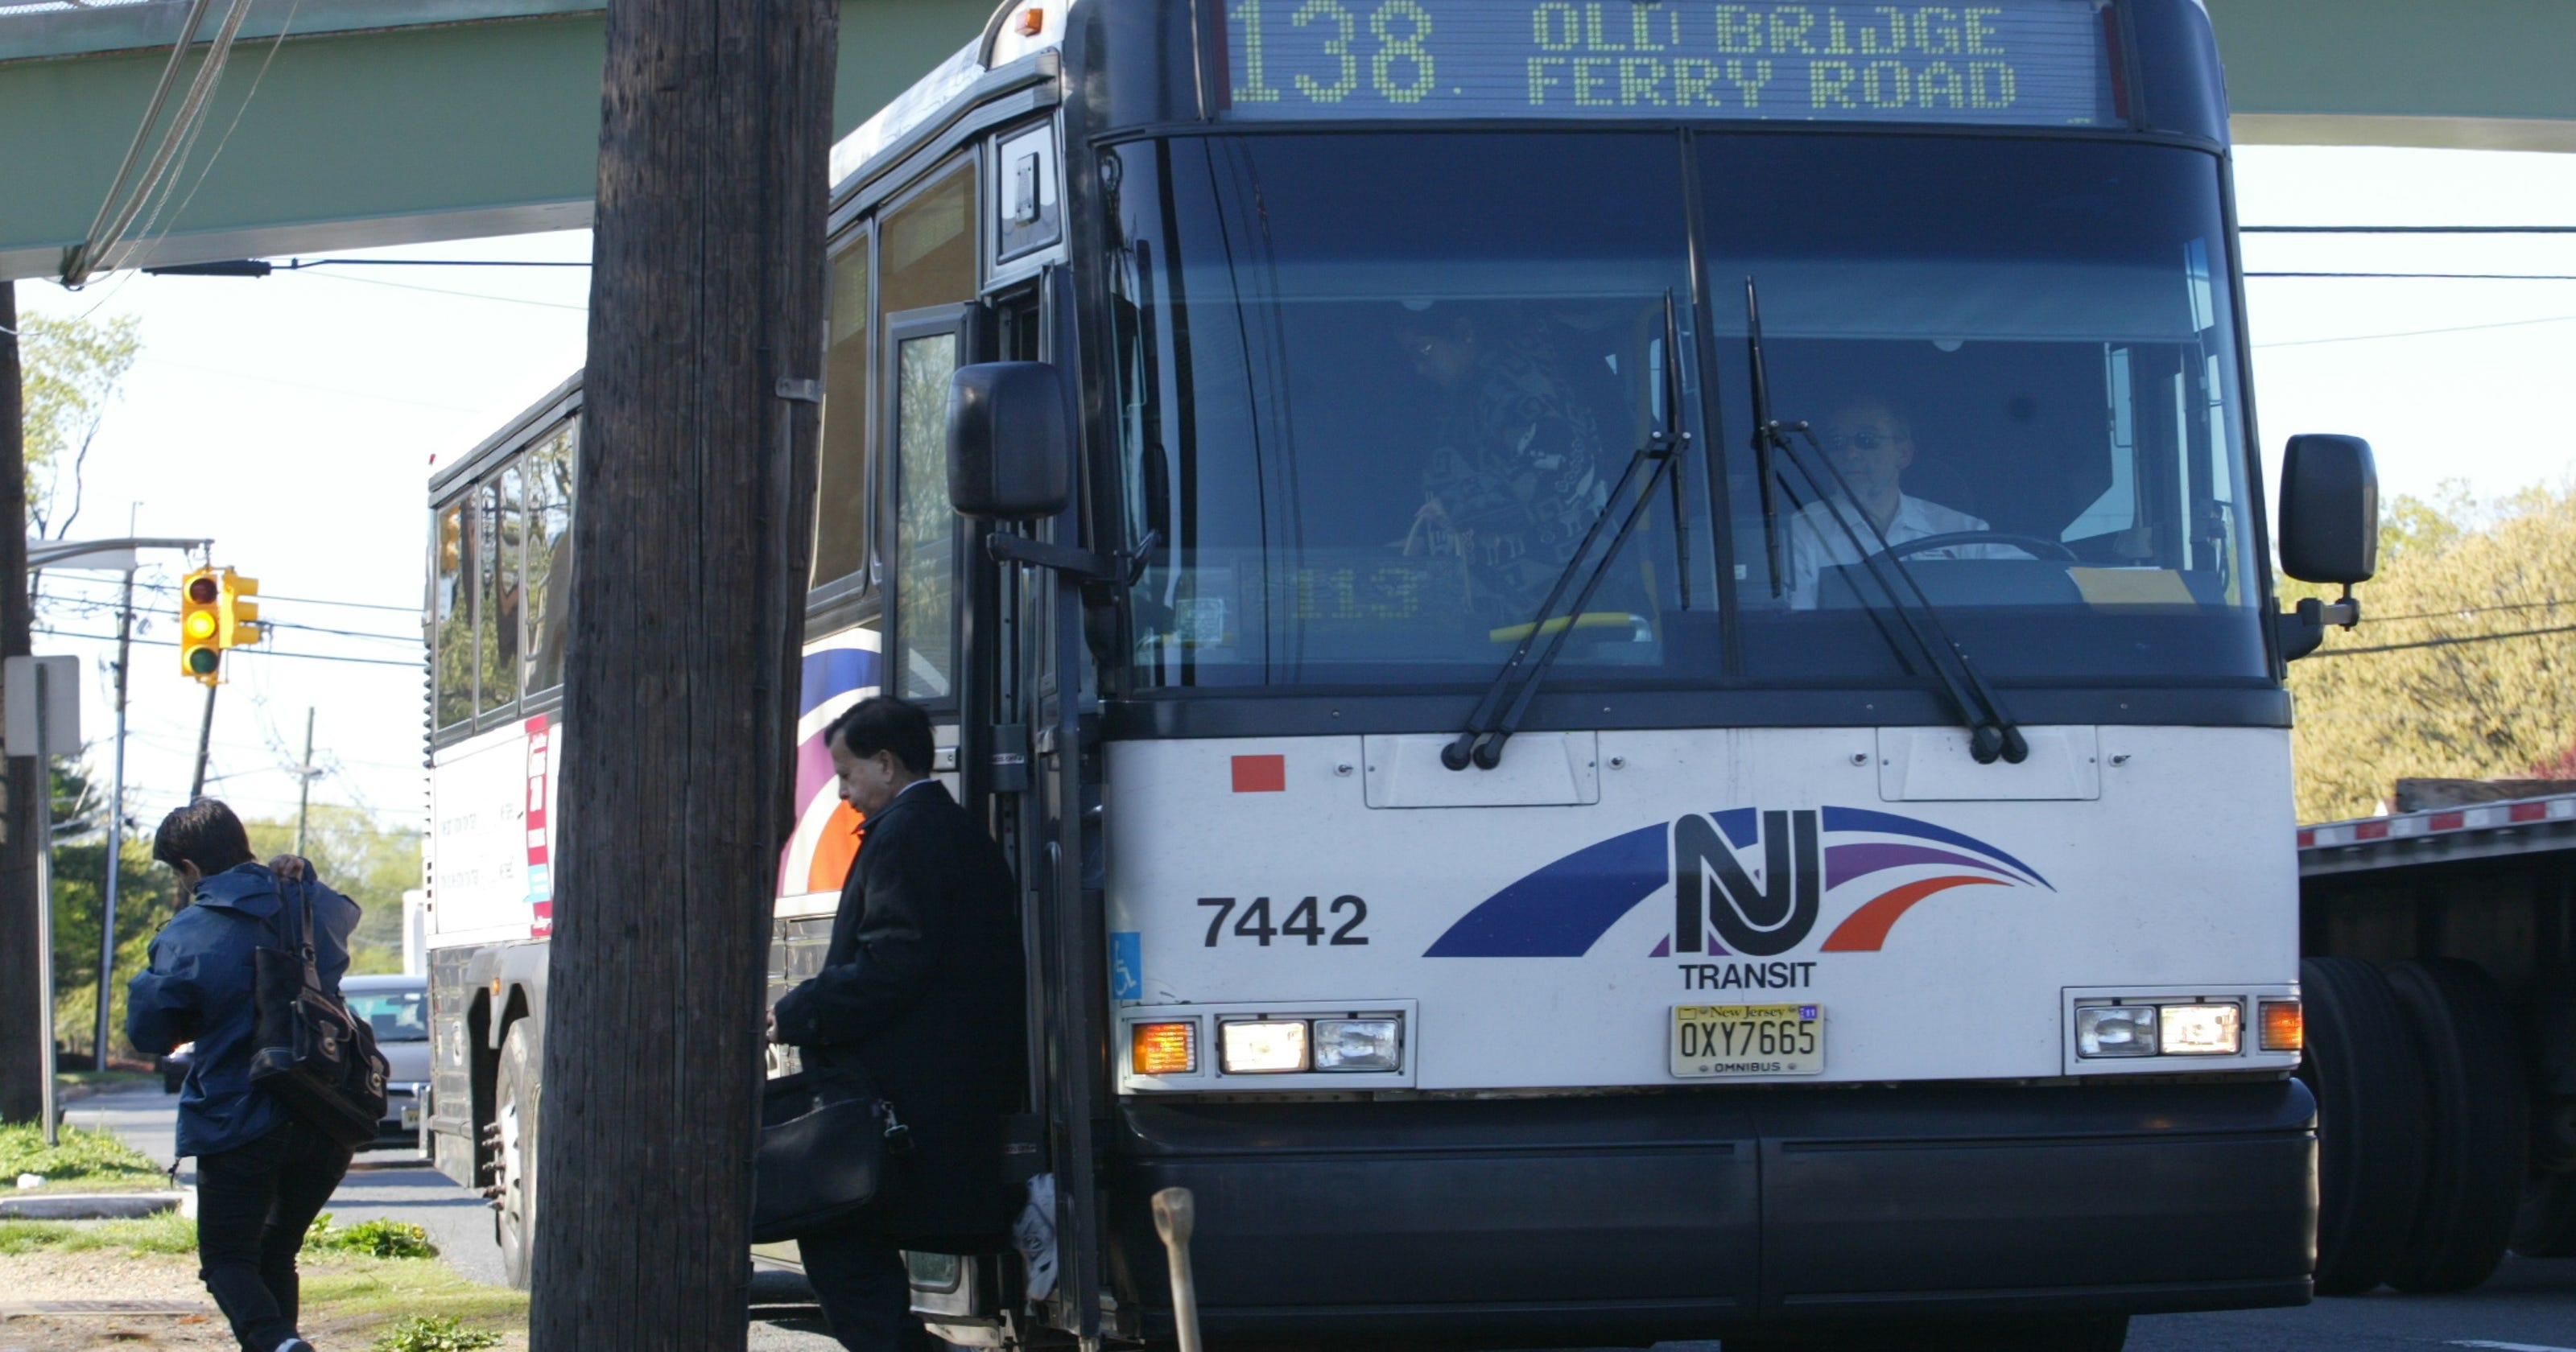 Nj Transit Wants To Discontinue Route 22 Bus